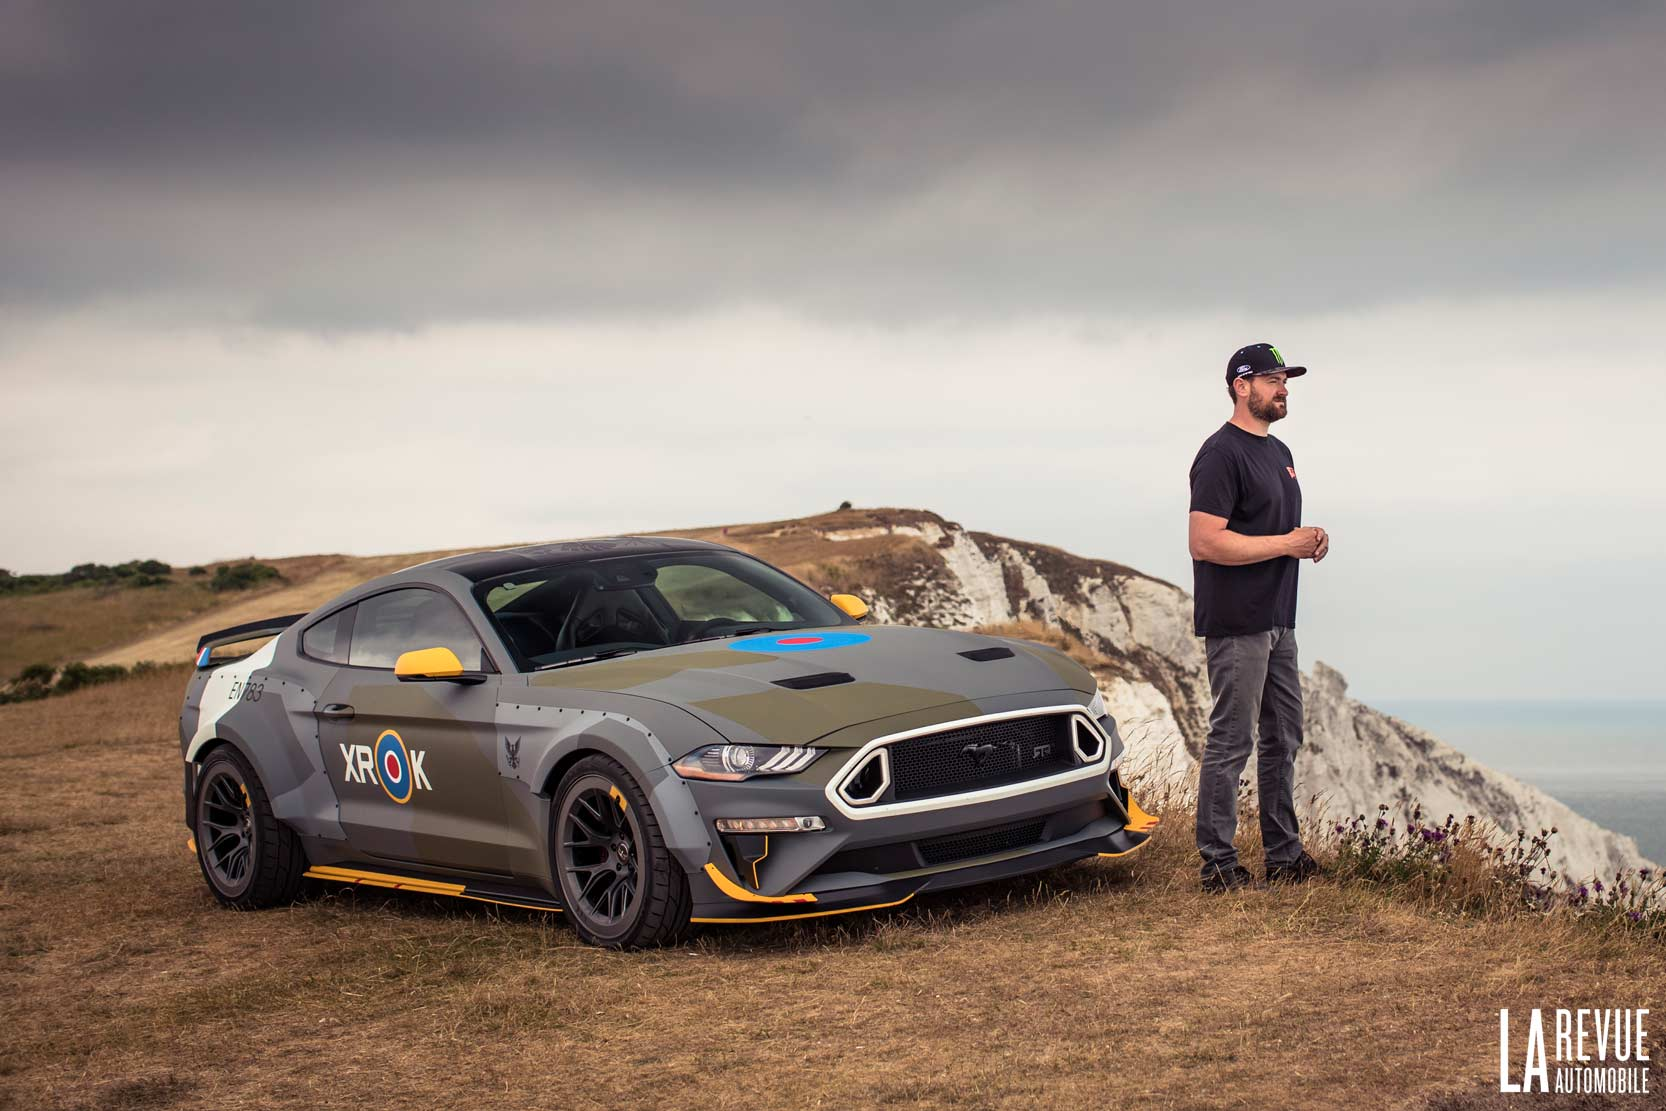 Exterieur_Ford-Mustang-GT-Eagle-Squadron-Spitfire_5